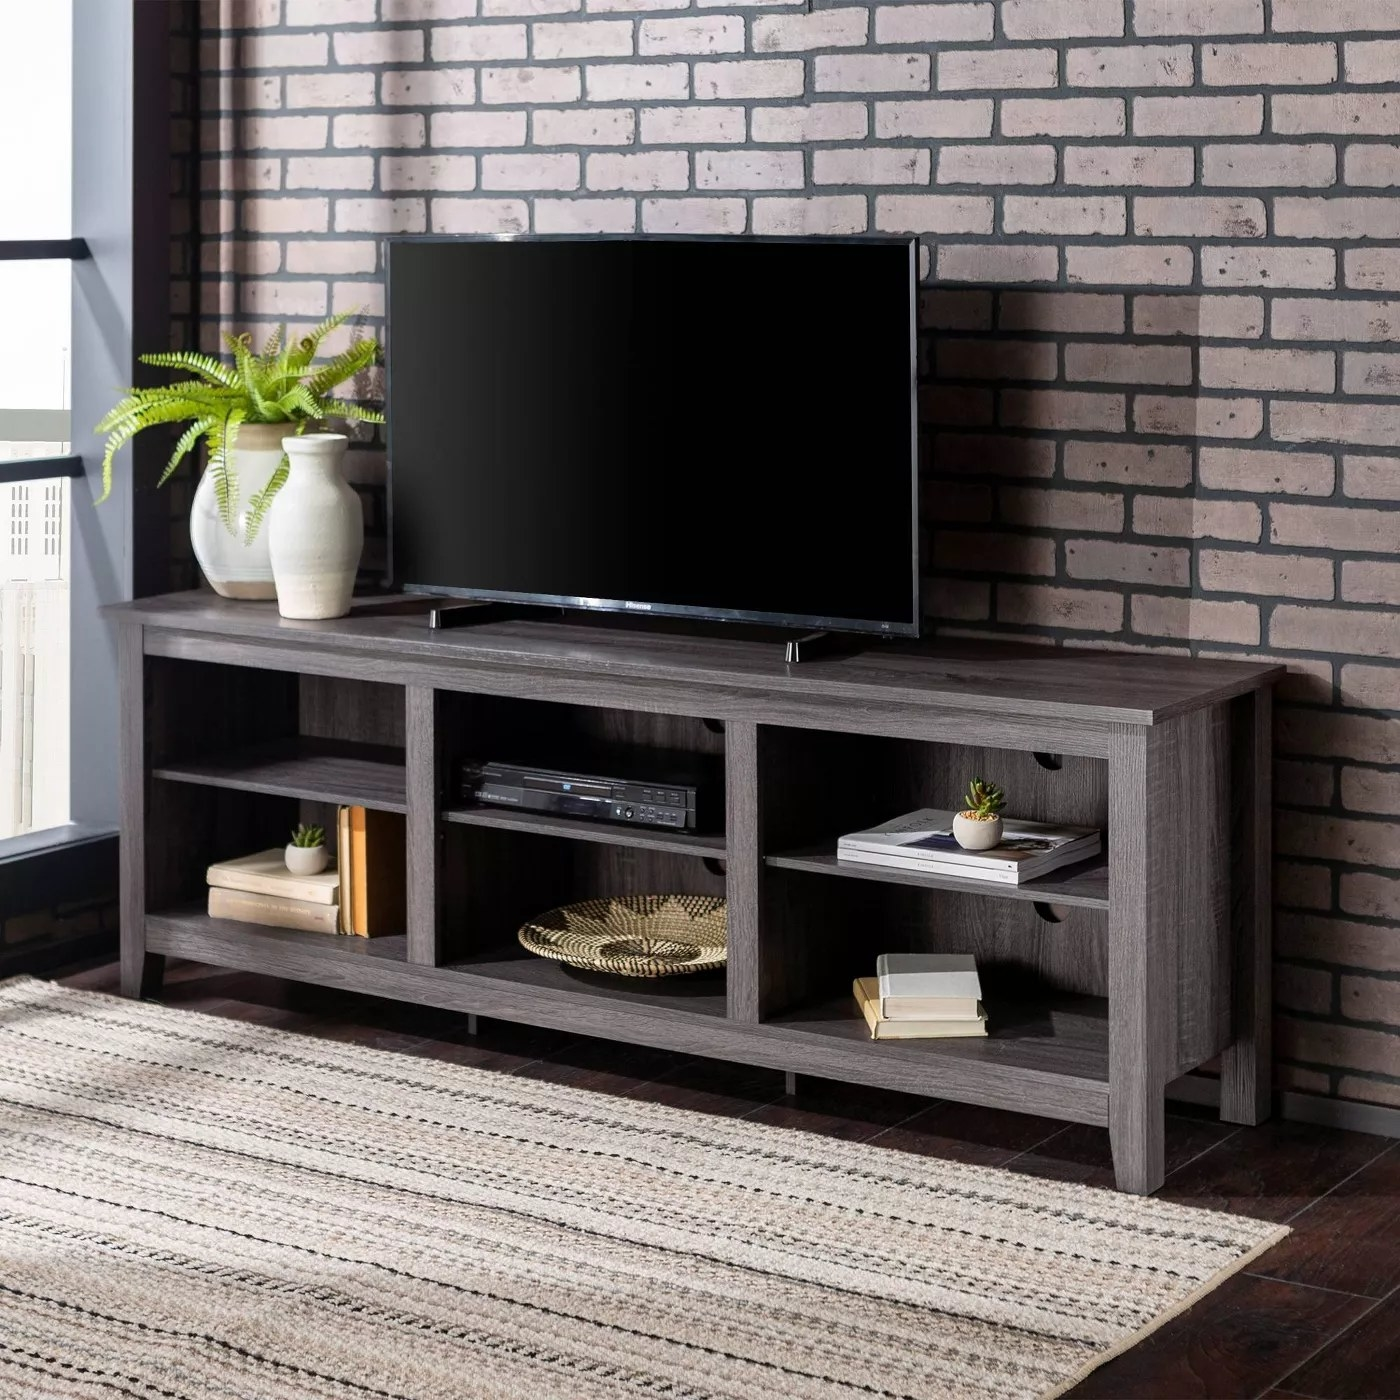 The TV stand in charcoal